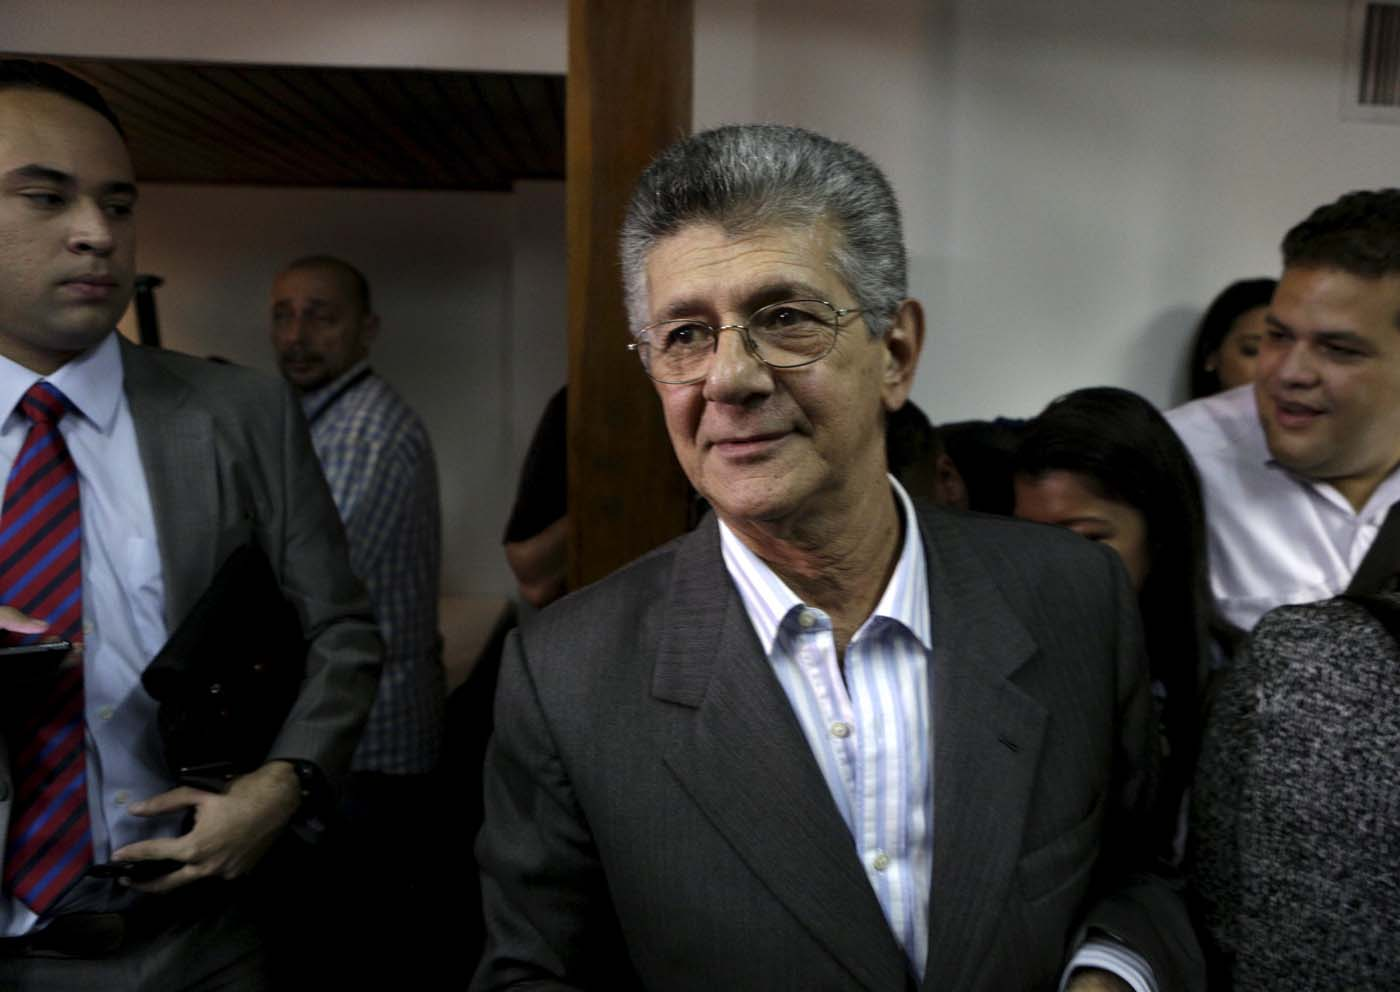 Henry Ramos Allup (C), deputy of Venezuela's coalition of opposition parties (MUD), walks after a news conference in Caracas December 29, 2015. REUTERS/Marco Bello